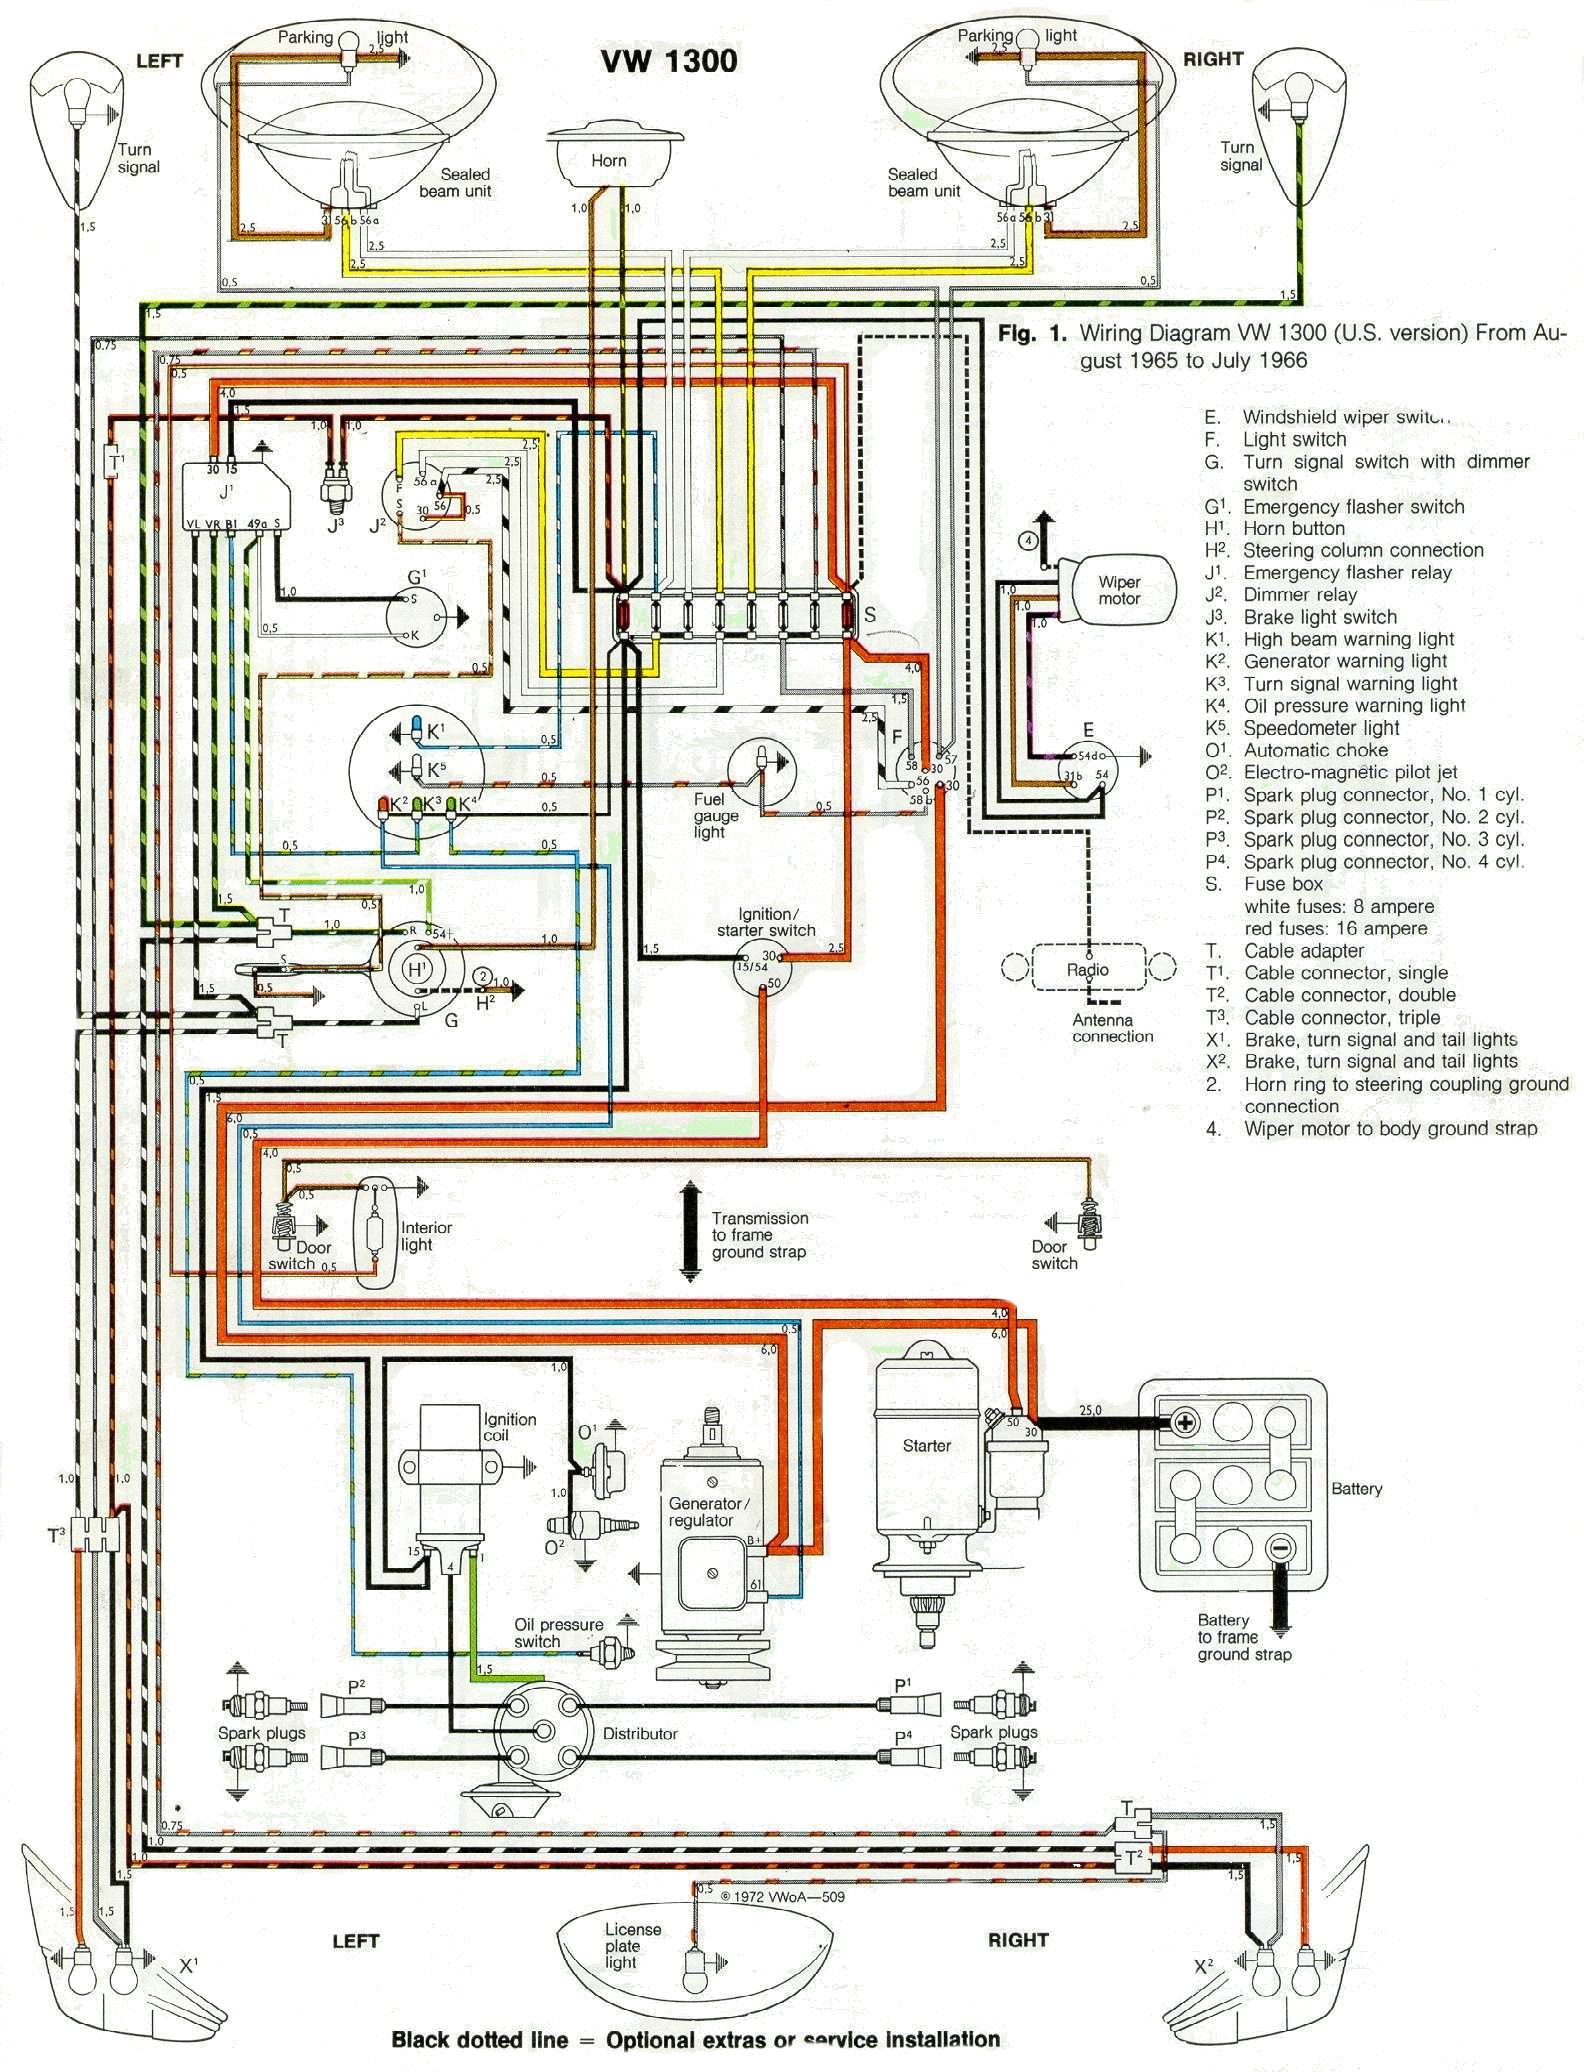 hight resolution of wrg 7679 2014 jetta coil wiring diagram 1966 wiring diagram vw bug coil wiring vw